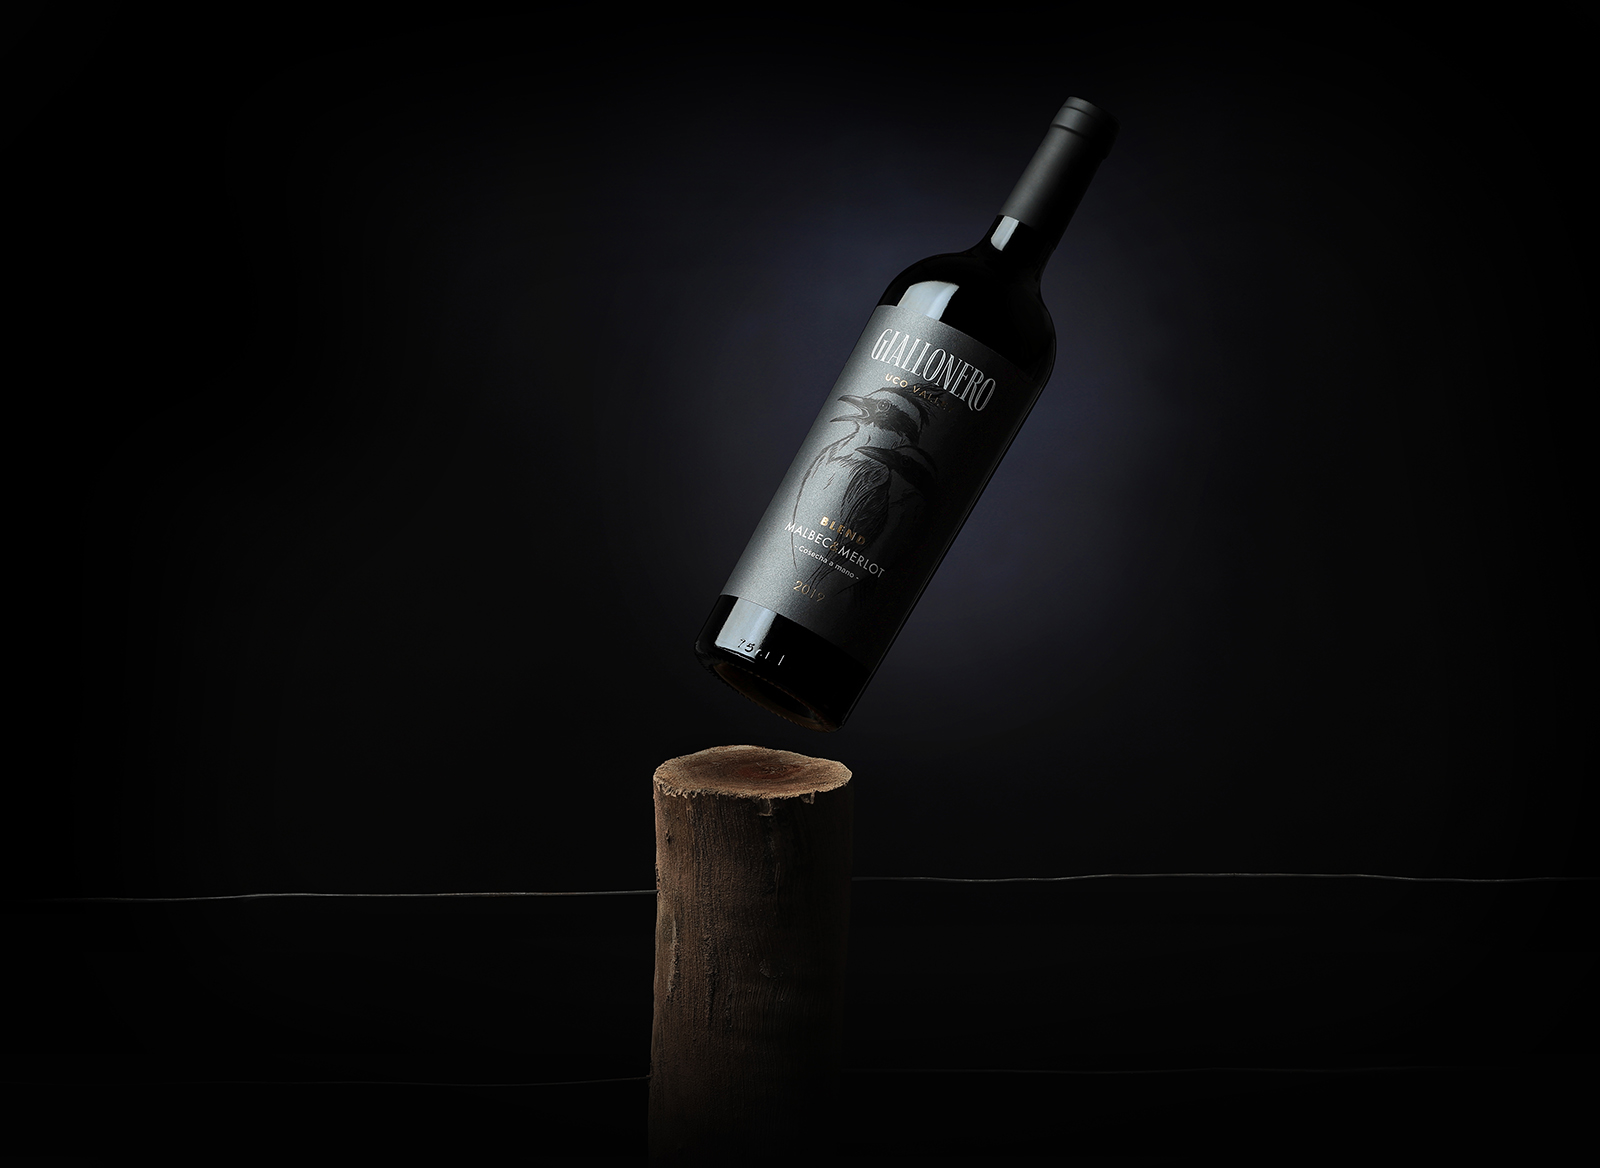 Disruptive Brand Agency Create Brand and Label Design for Giallonero Wines in Argentina